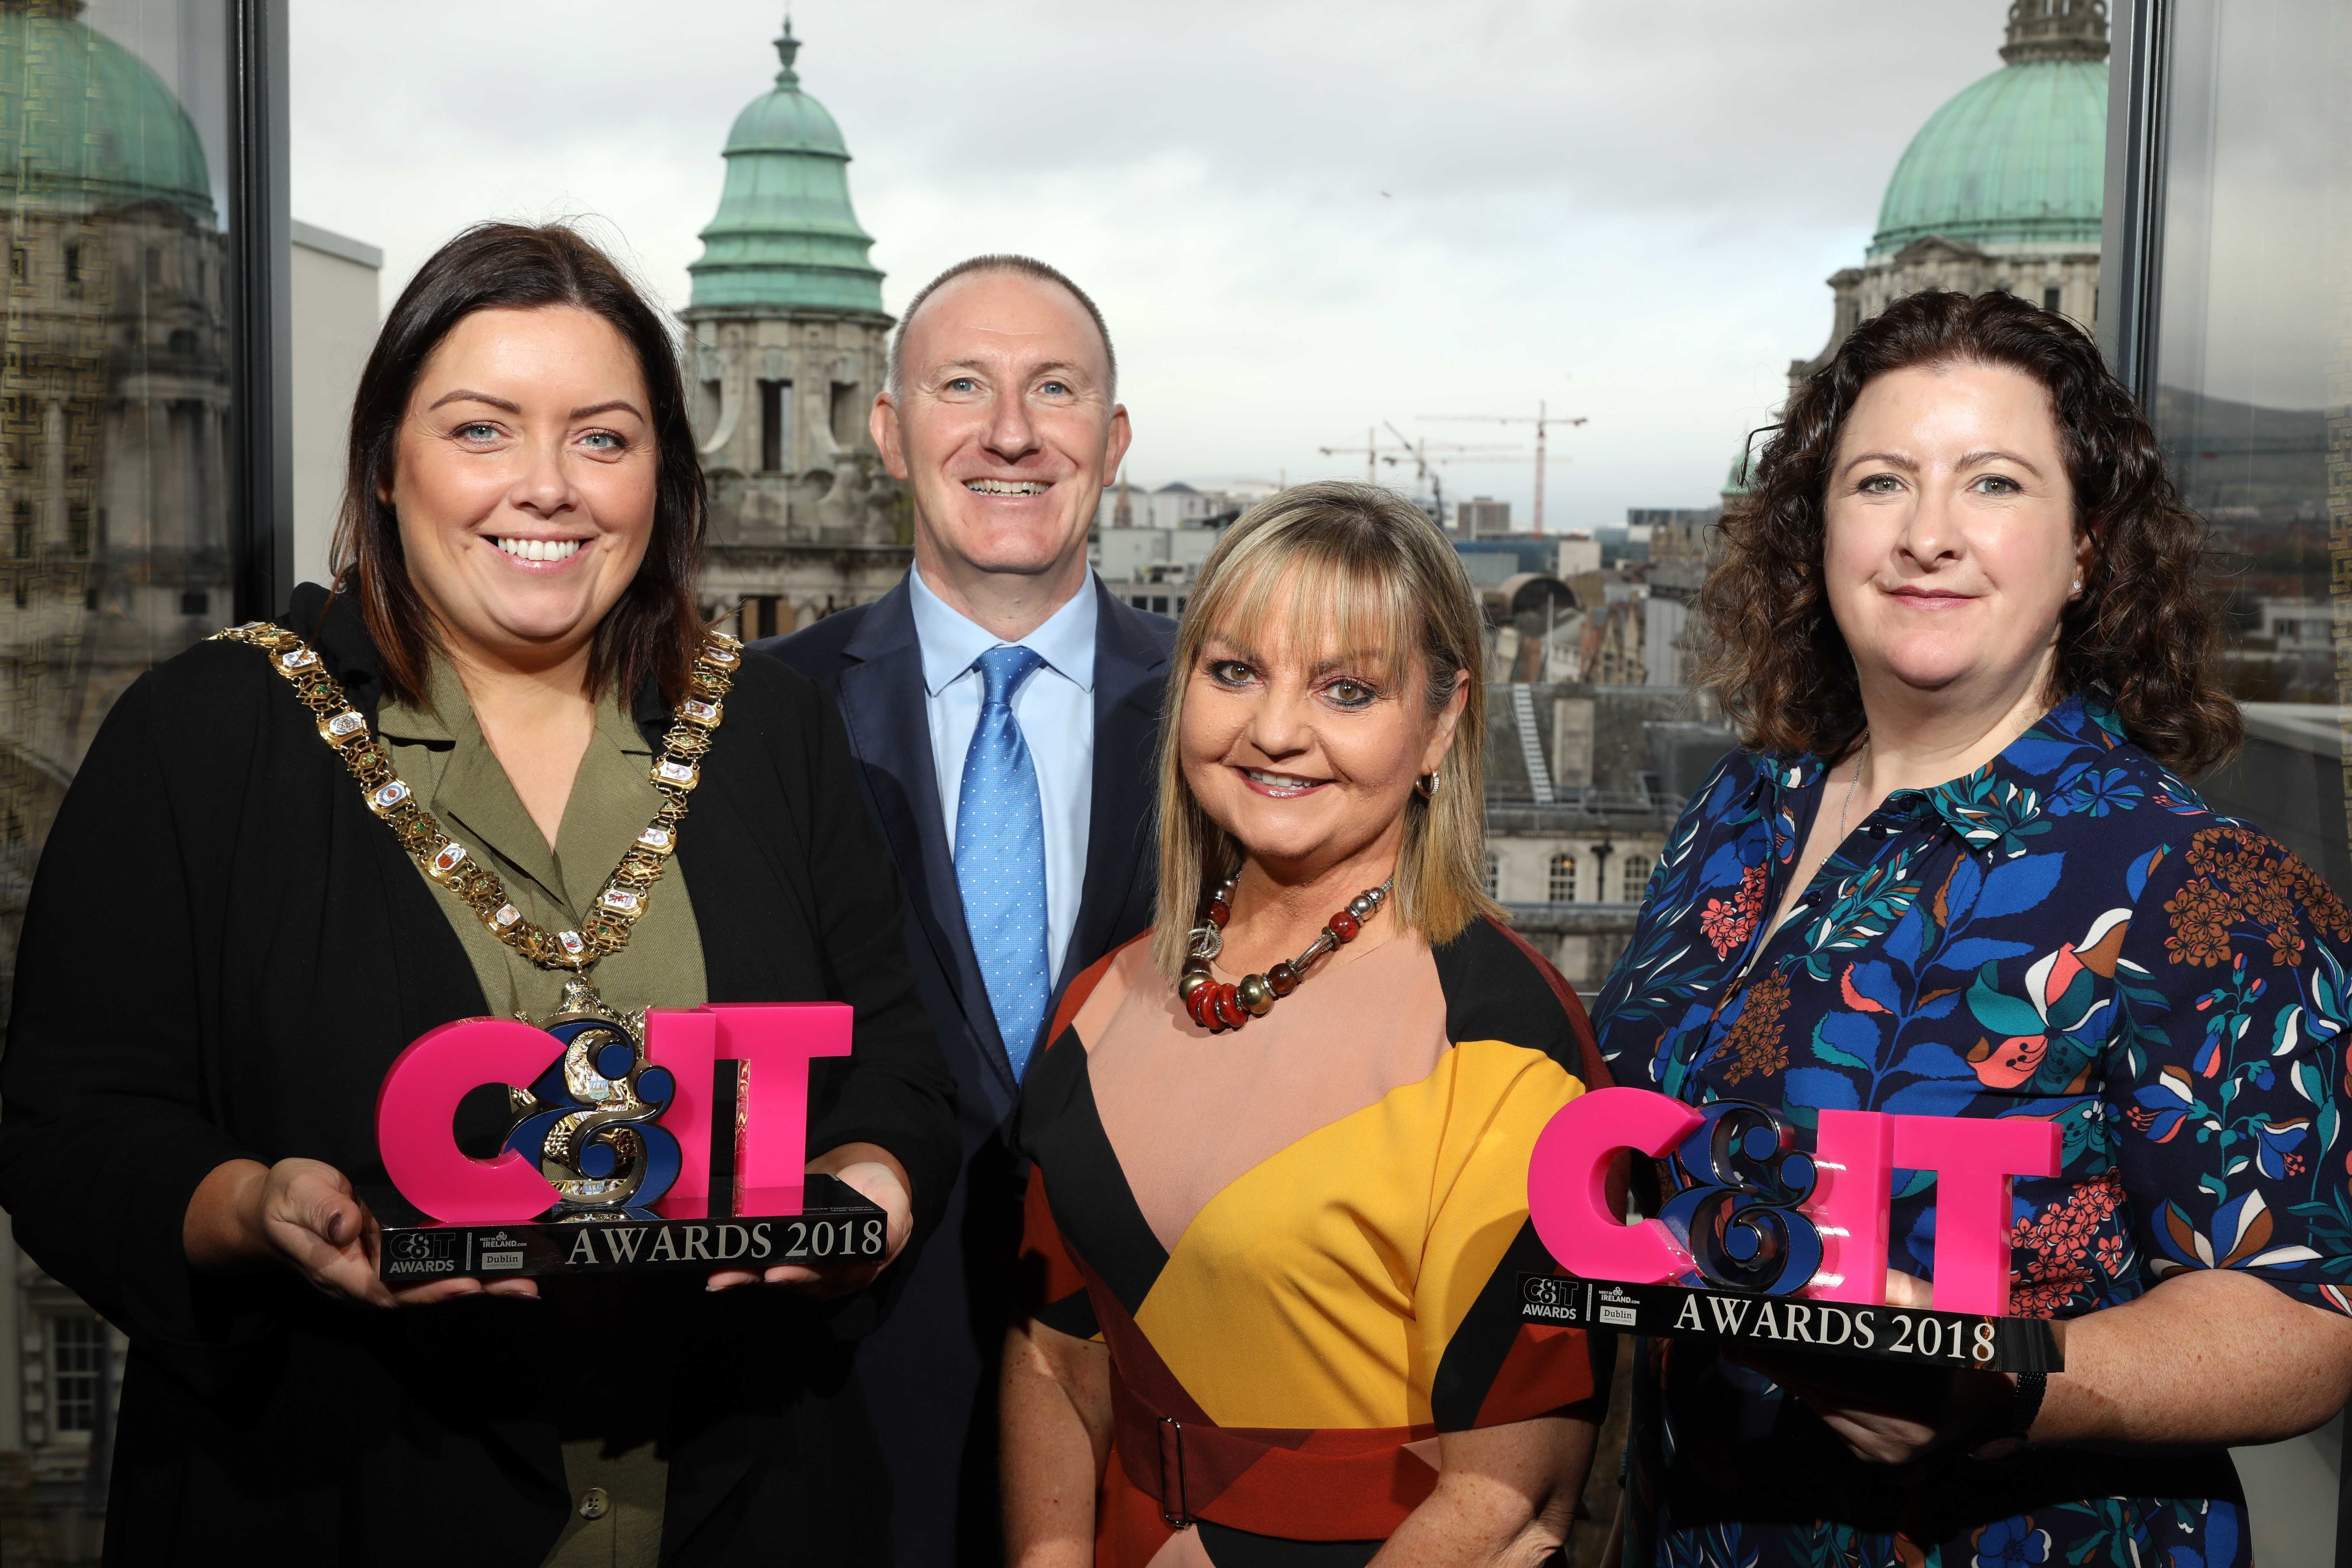 Team Belfast with the C&IT Award for Best Destination